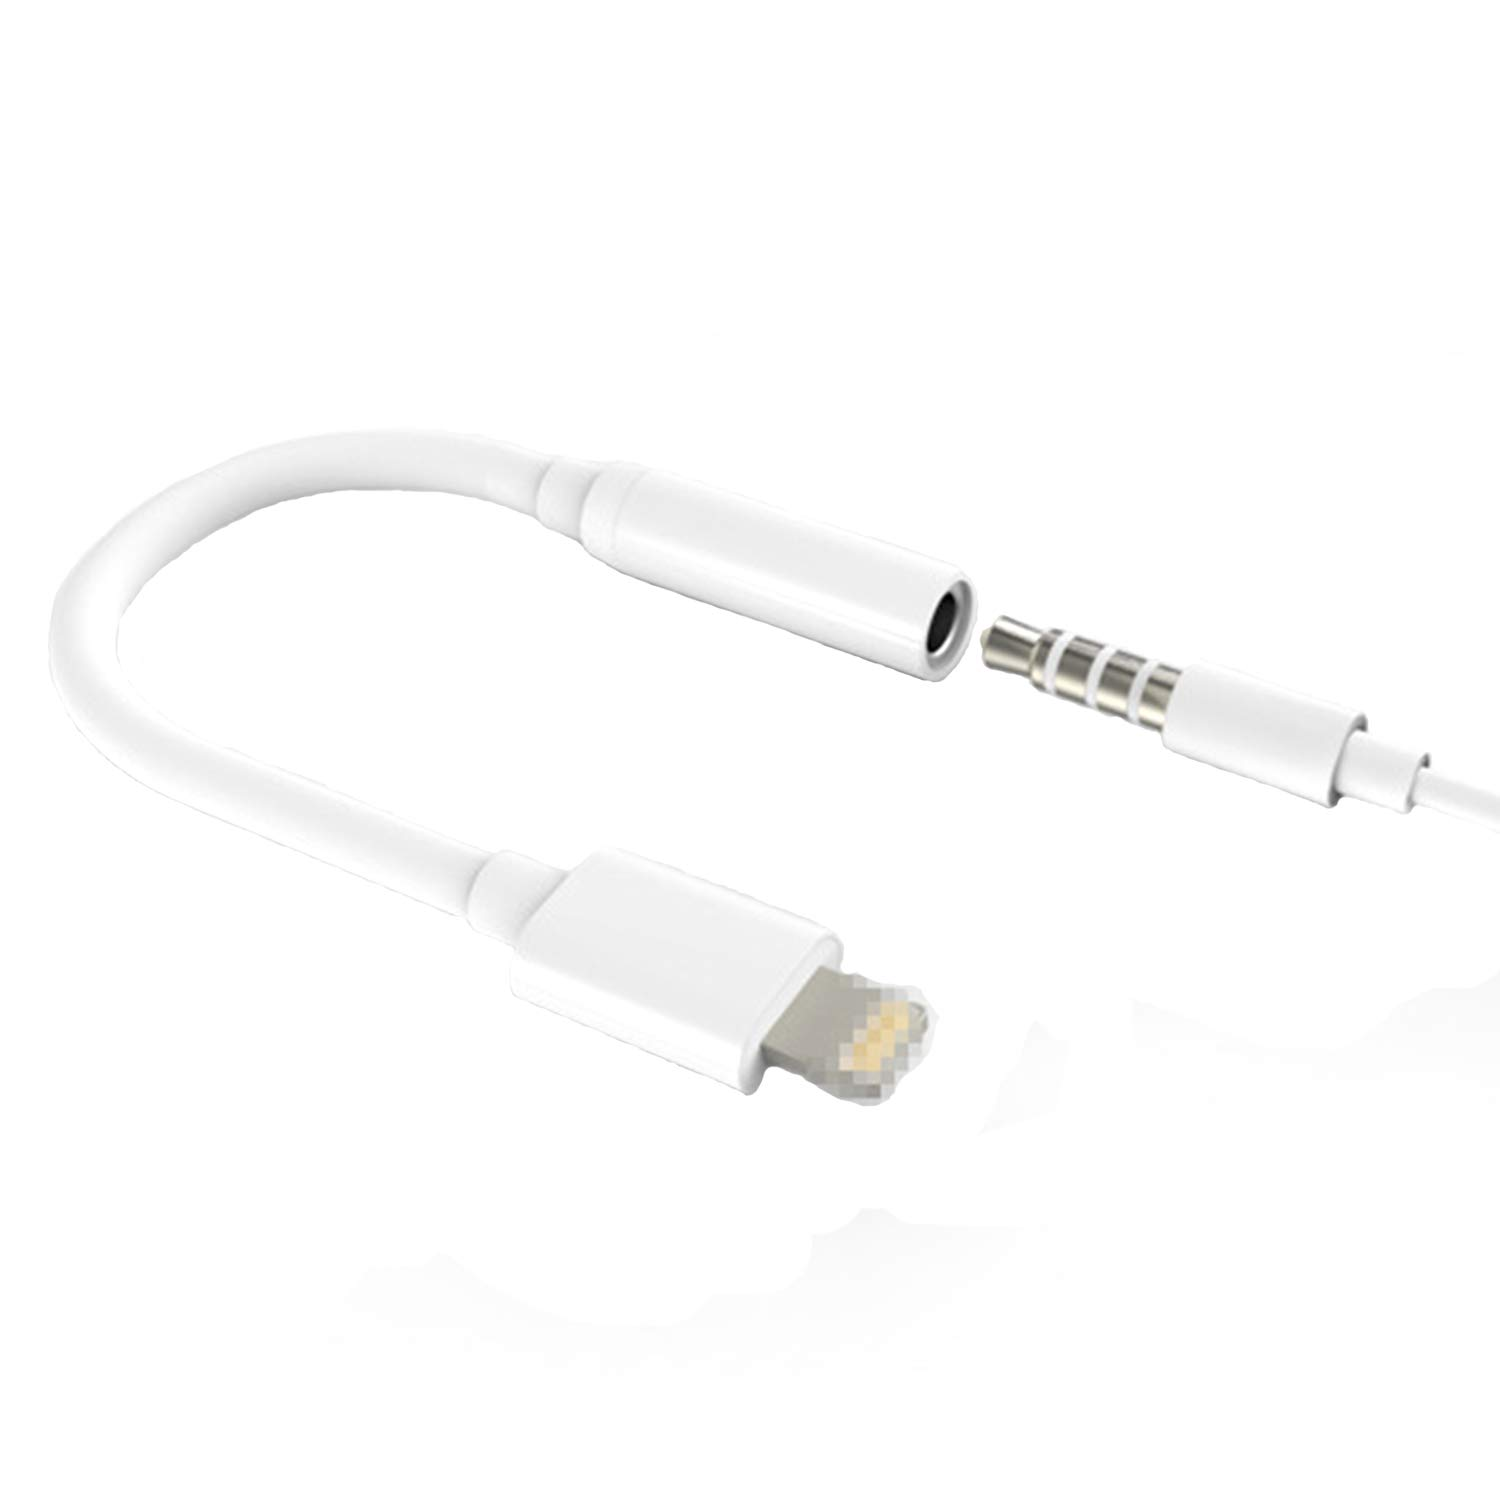 3.5mm AUX Audio Headphone Jack Adaptor Earphone Extension Connector Cable for iPhone White